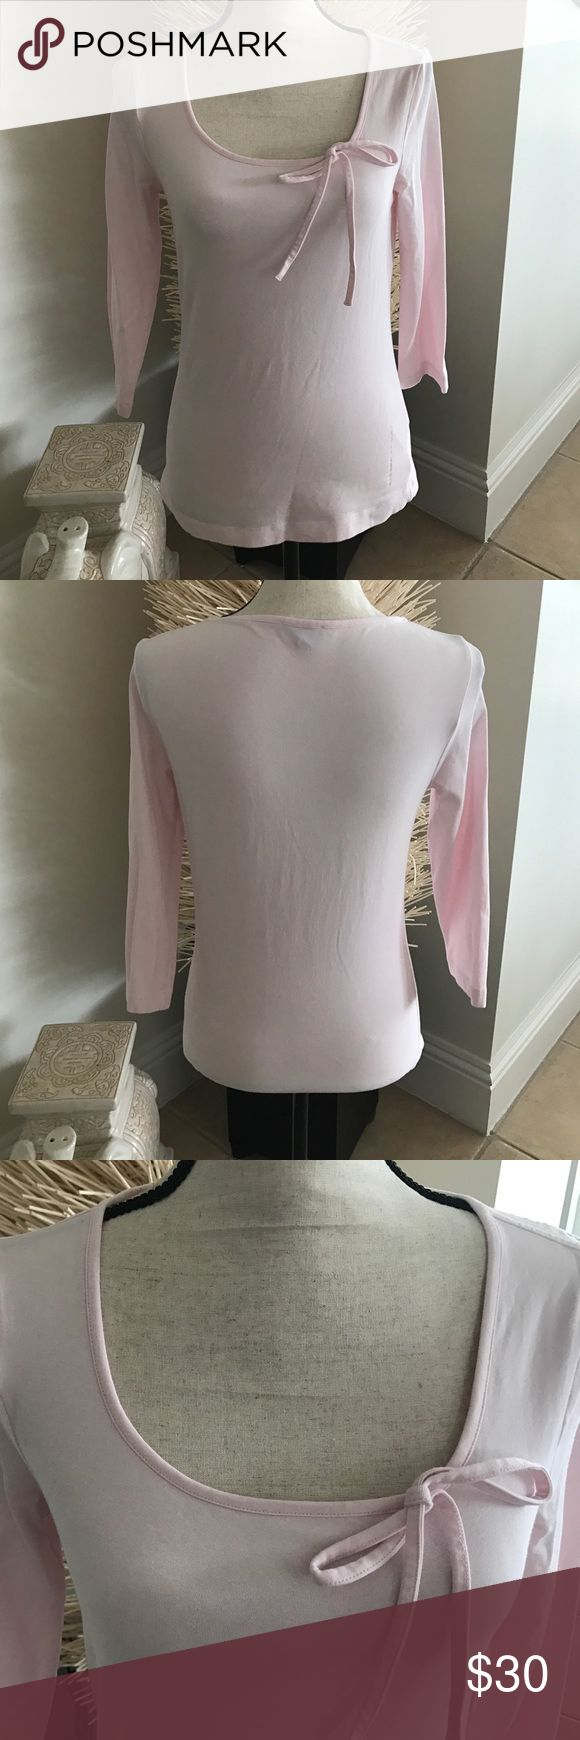 Escada Sport Cotton Shirt Escada Soort cotton 3/4 length cotton shirt with bow.  Like new in perfect condition. Fits a 6-8 Escada Sport  Tops Tees - Long Sleeve